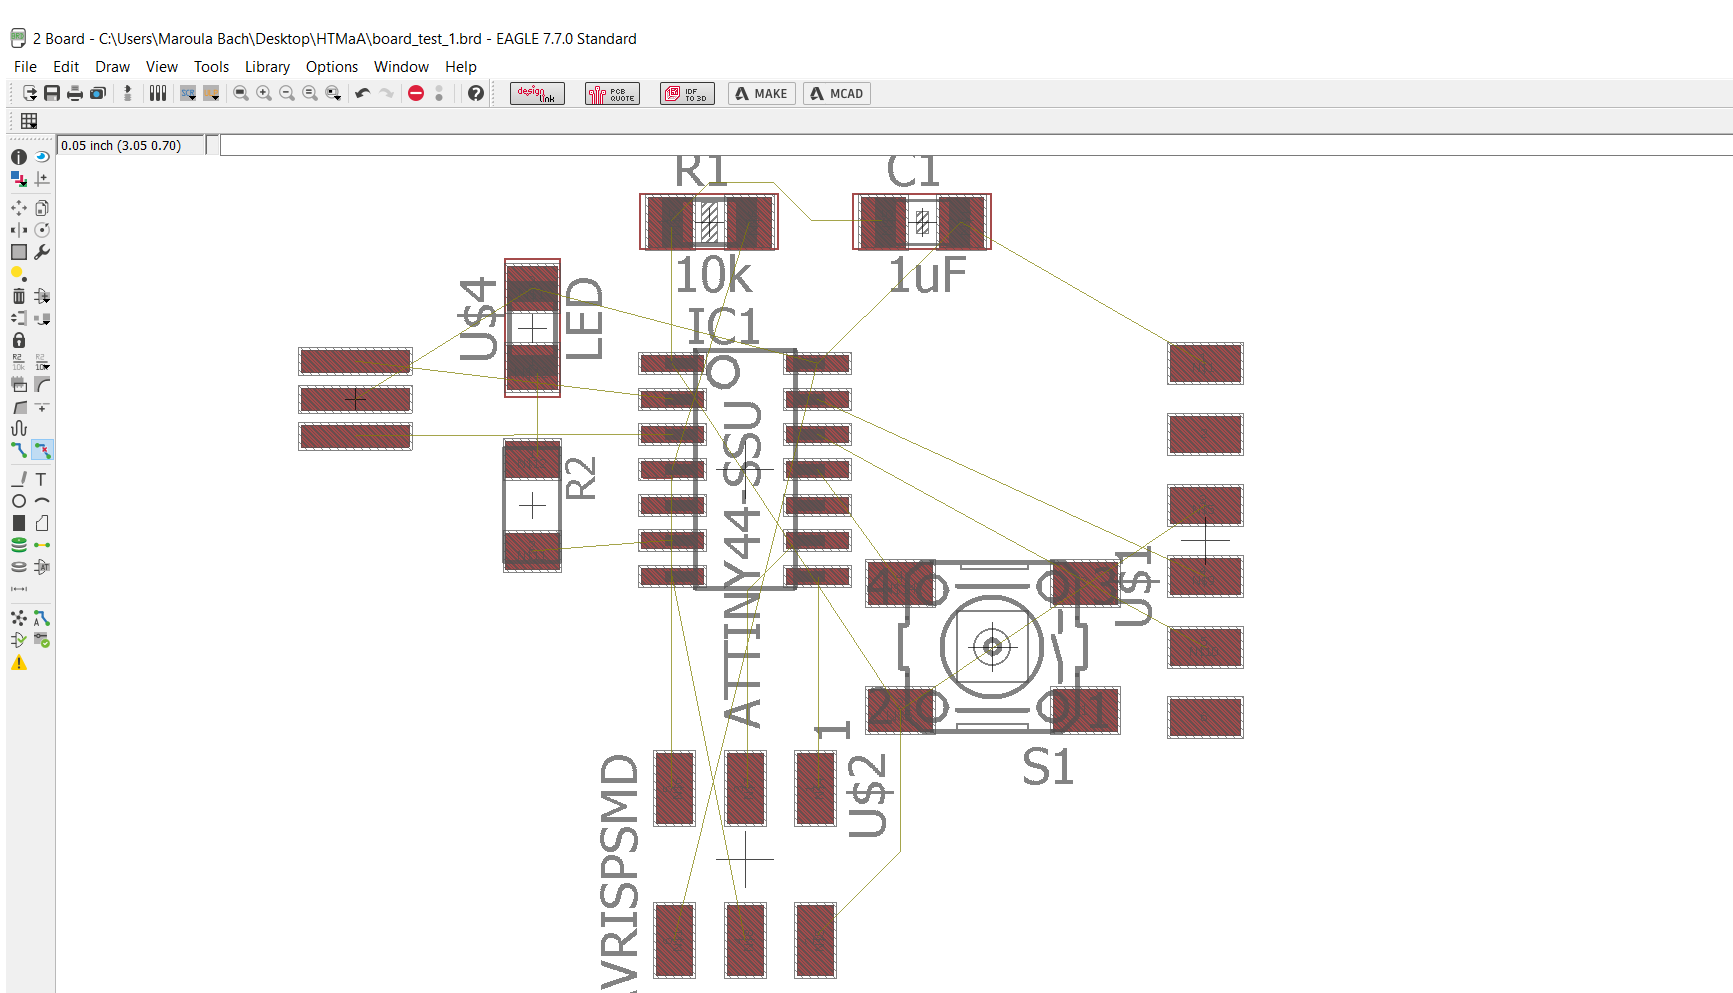 Maroula Bacharidou Figure 2 Schematic View In Eagle Pcb Software Importing And Connecting The Parts According To Sketch